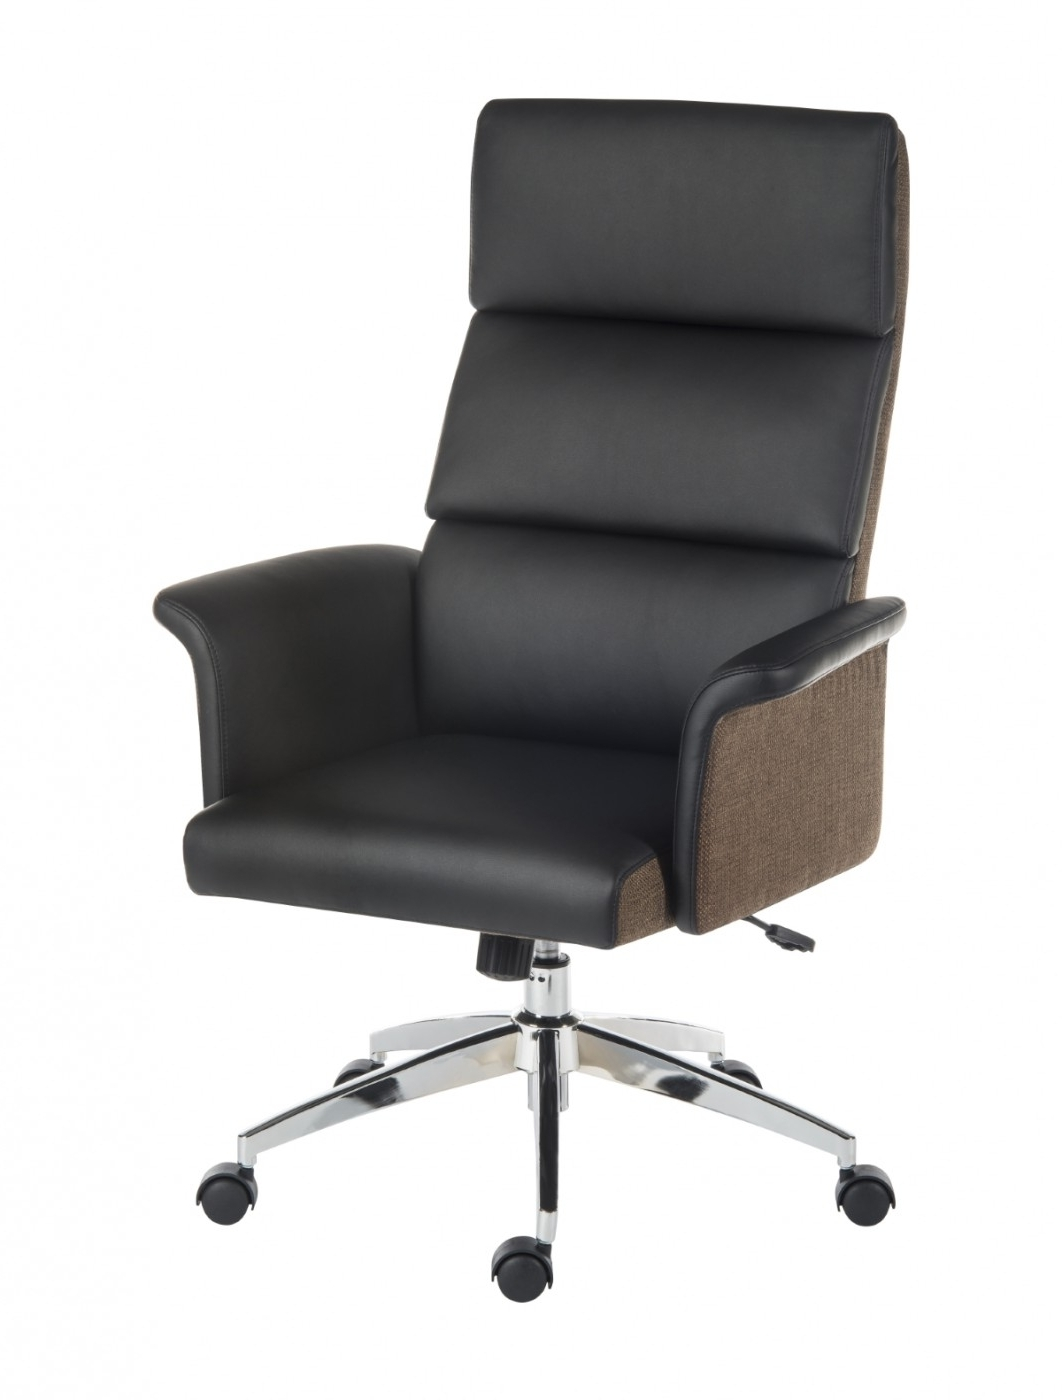 Ergonomic Executive Office Chairs Throughout Well Known Furniture : Executive Office Chair Ergonomic Office Chair' Big And (Gallery 15 of 20)